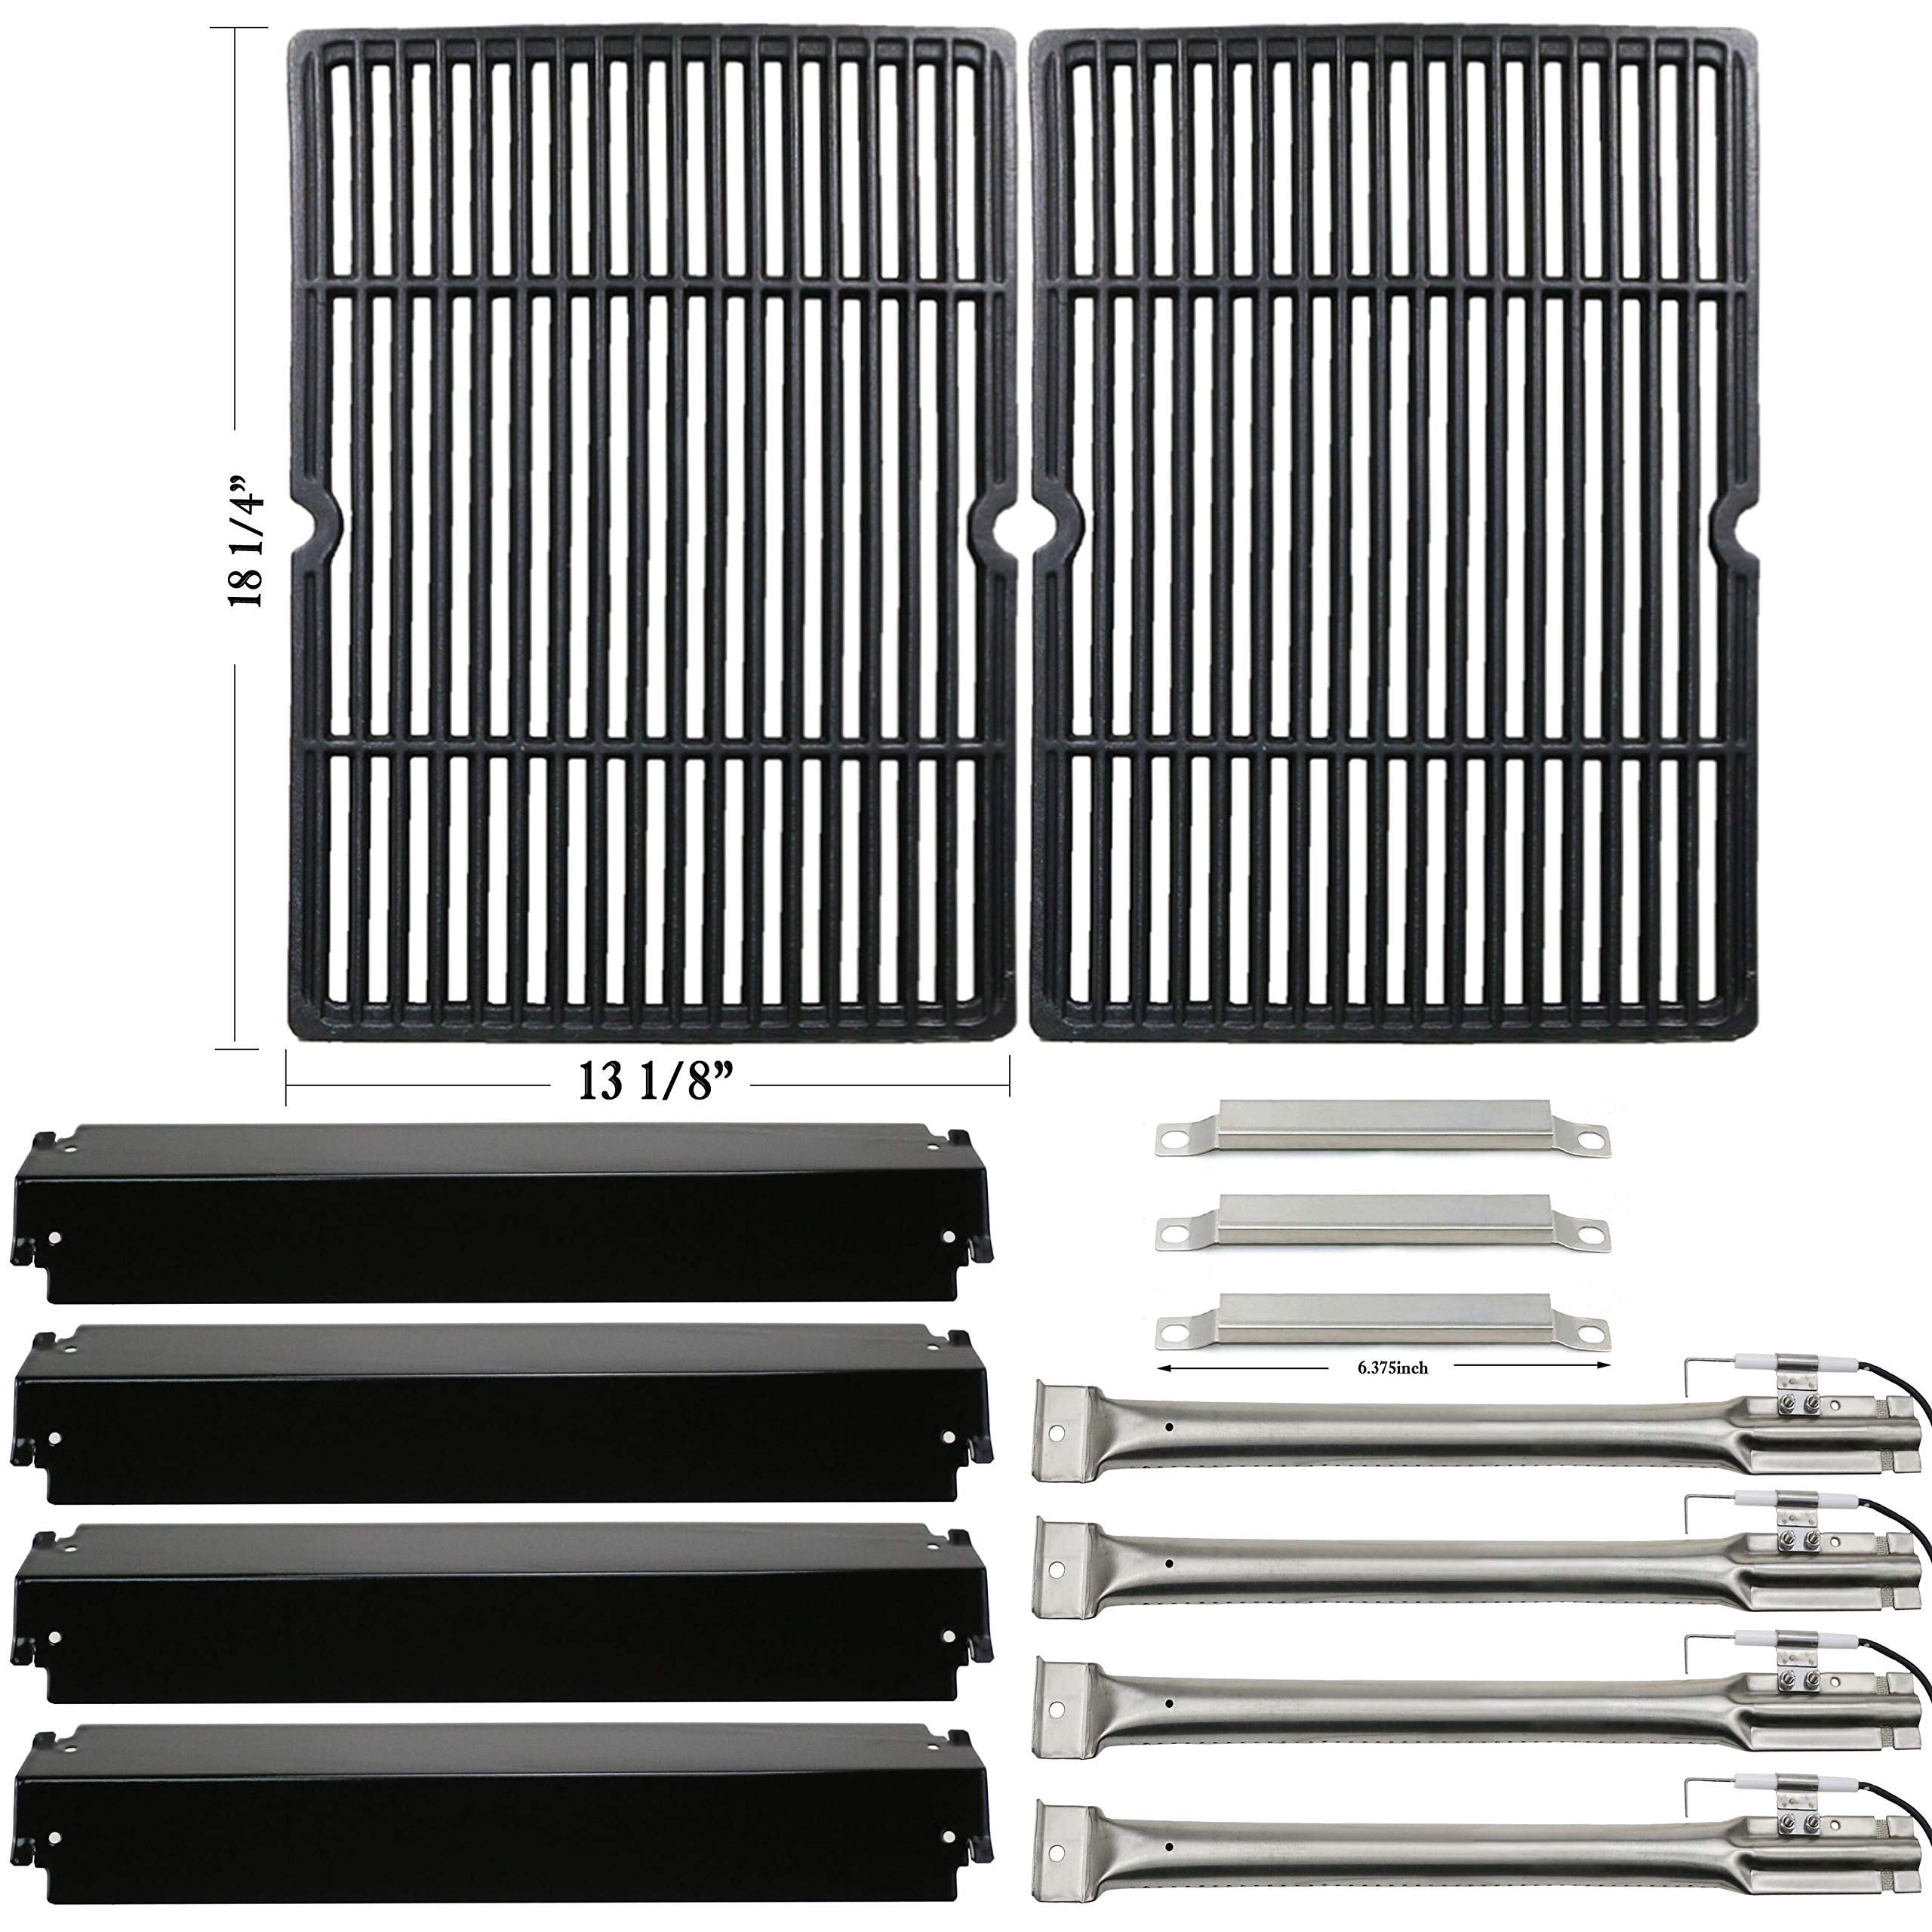 Hisencn Replacement Rebuild Kit for Charbroil Commercial 463268606, 463268007 Gas Grill Burner Pipe, Carryover Tubes, Heat Plates, Grill Cooking Grids Grates, Igniter